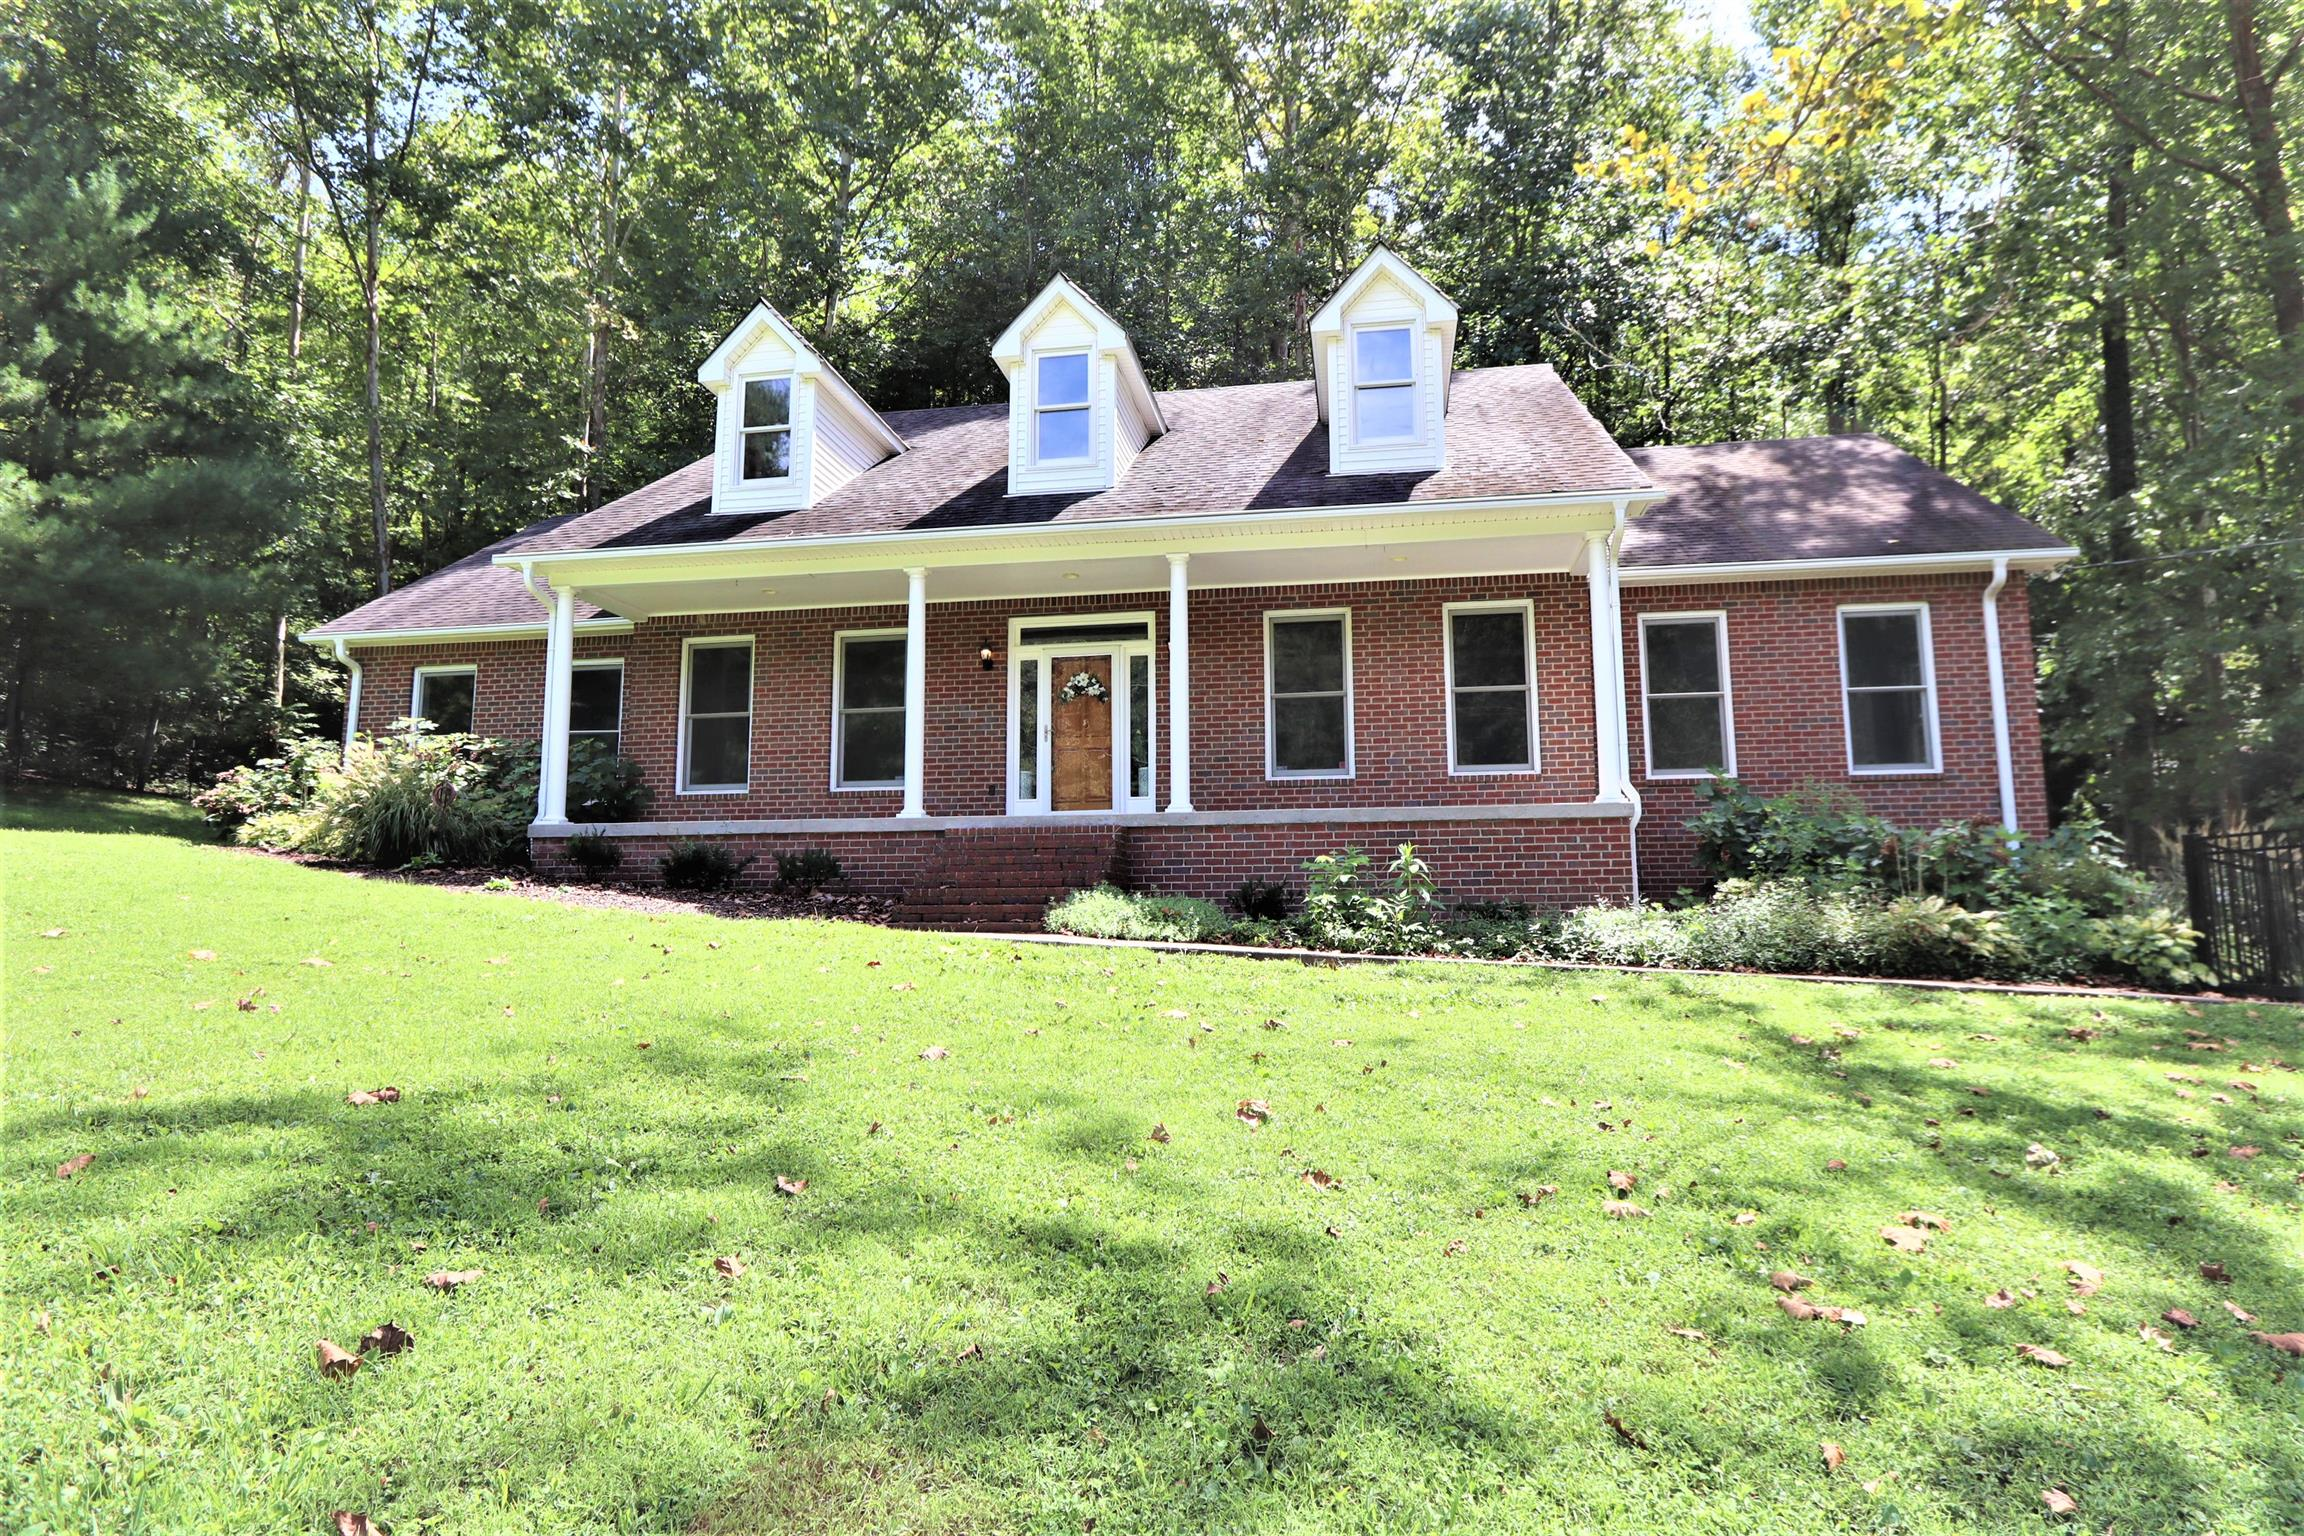 1029 Garland Hollow Rd, Pegram, TN 37143 - Pegram, TN real estate listing